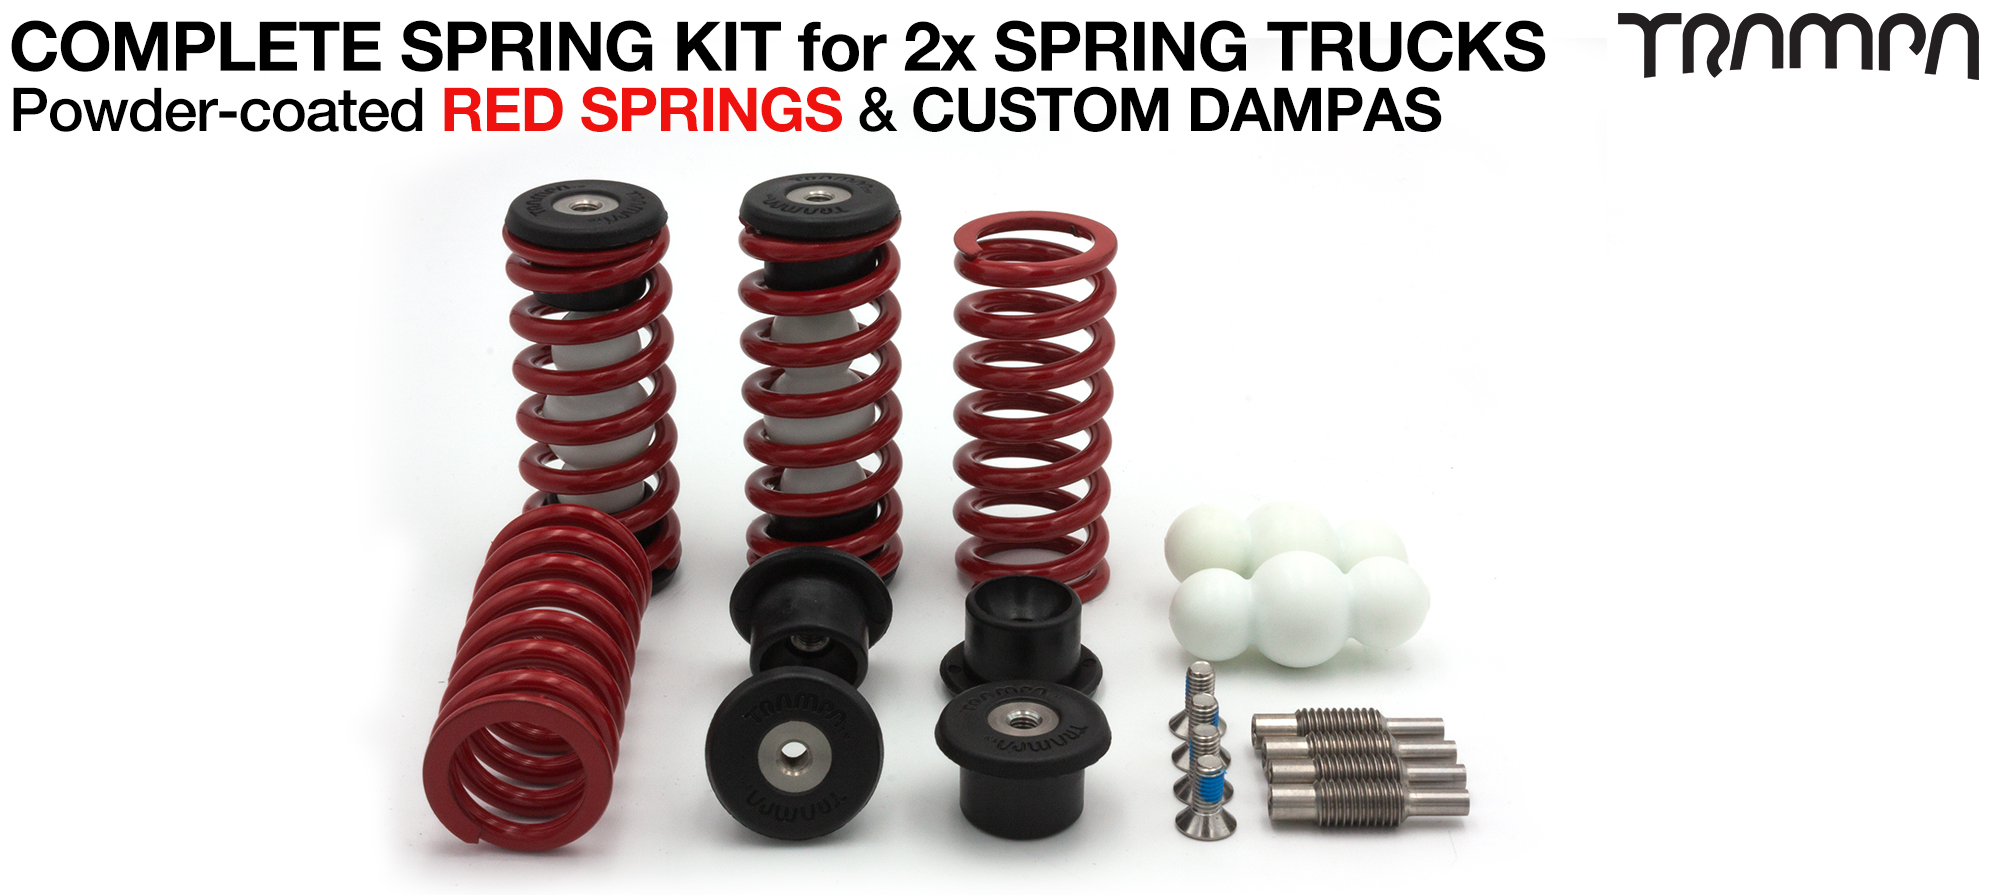 Powder Coated Springs - RED